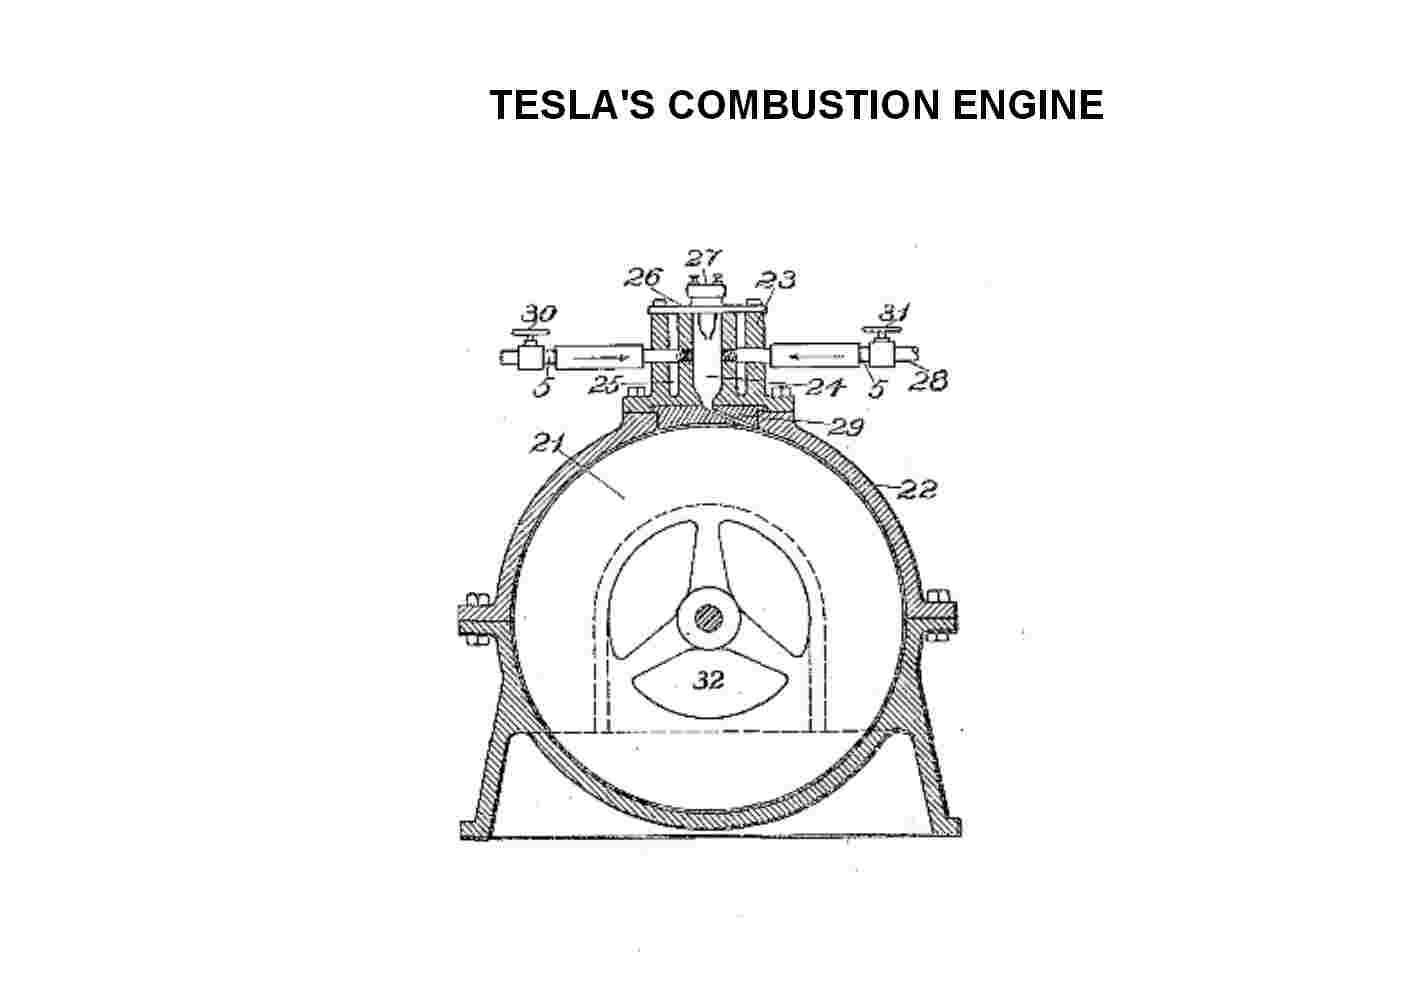 Nikola Tesla Blueprint Plans For Free Energy Nikola tesla's internal